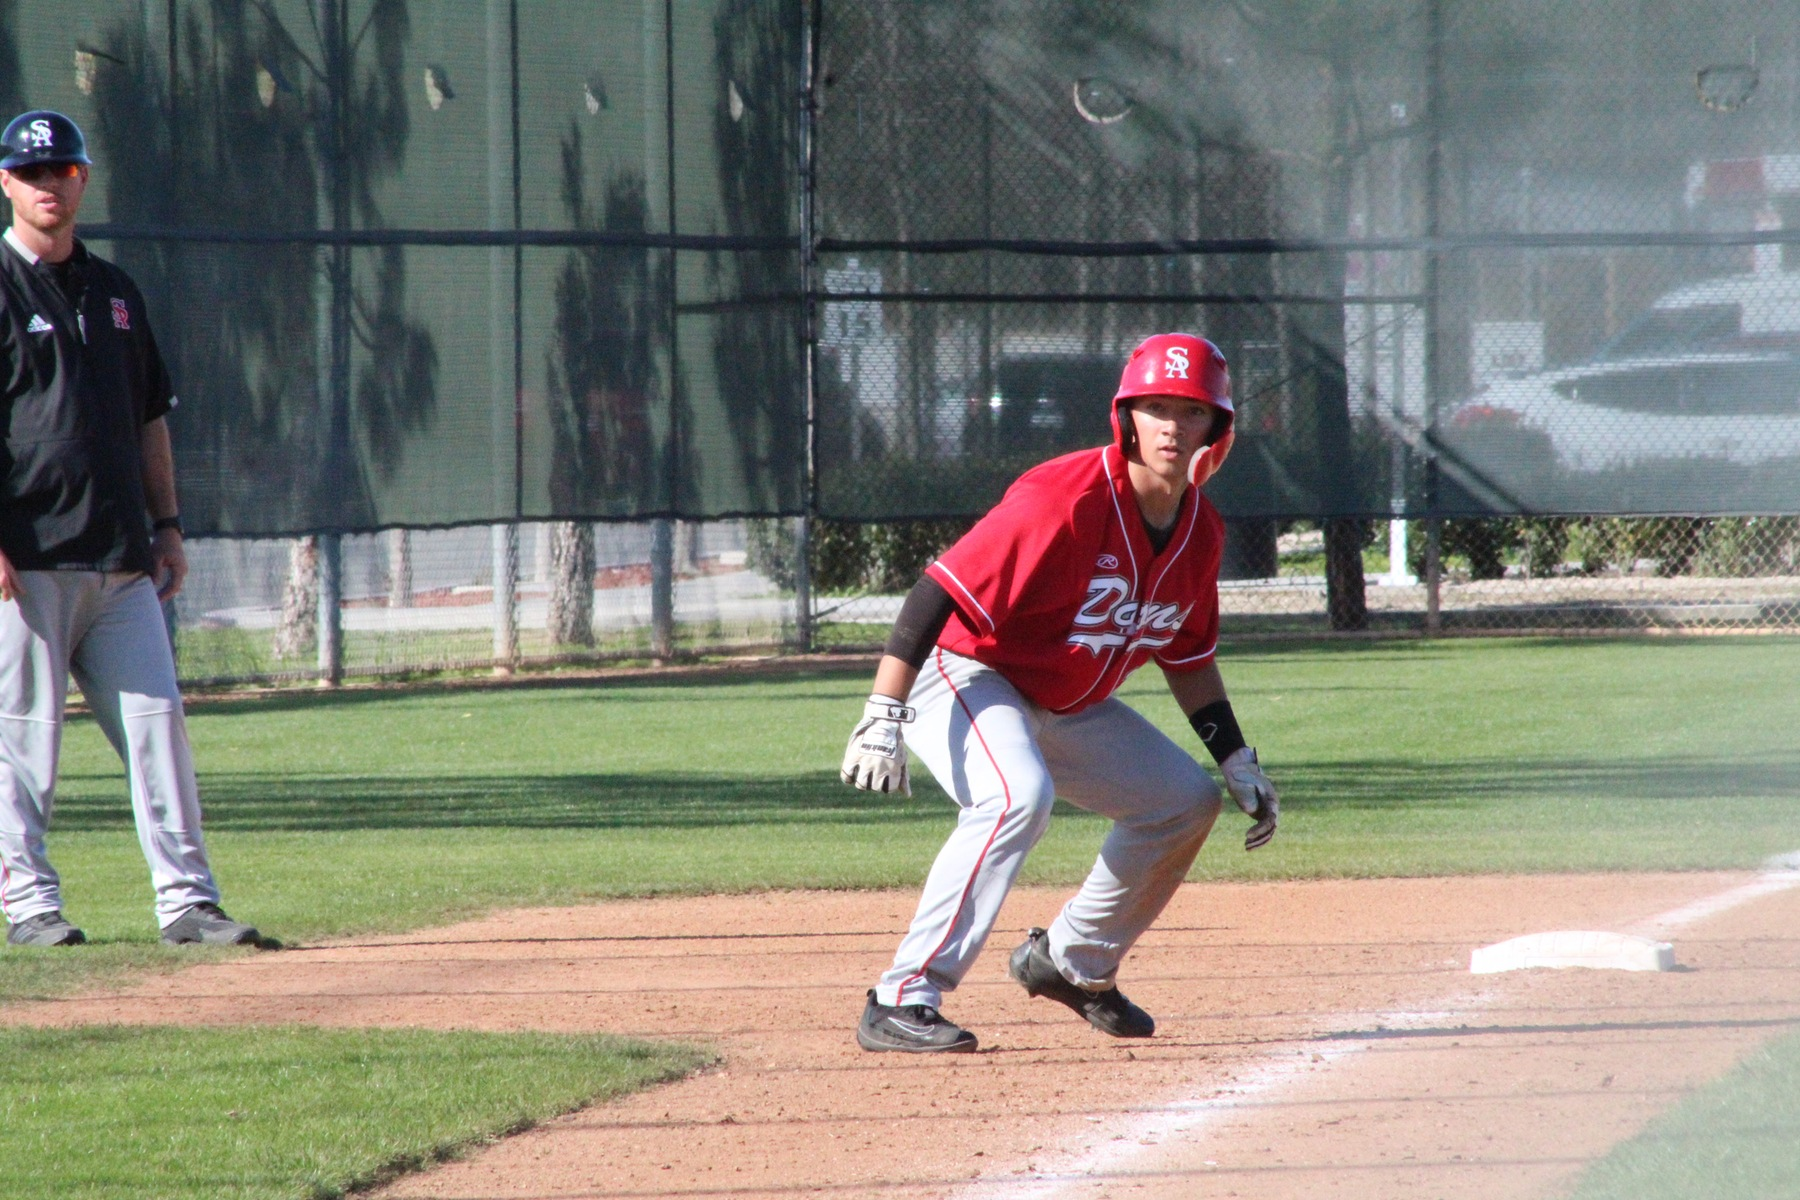 Dons Fall Short of Comeback in 11-10 Loss to Cypress